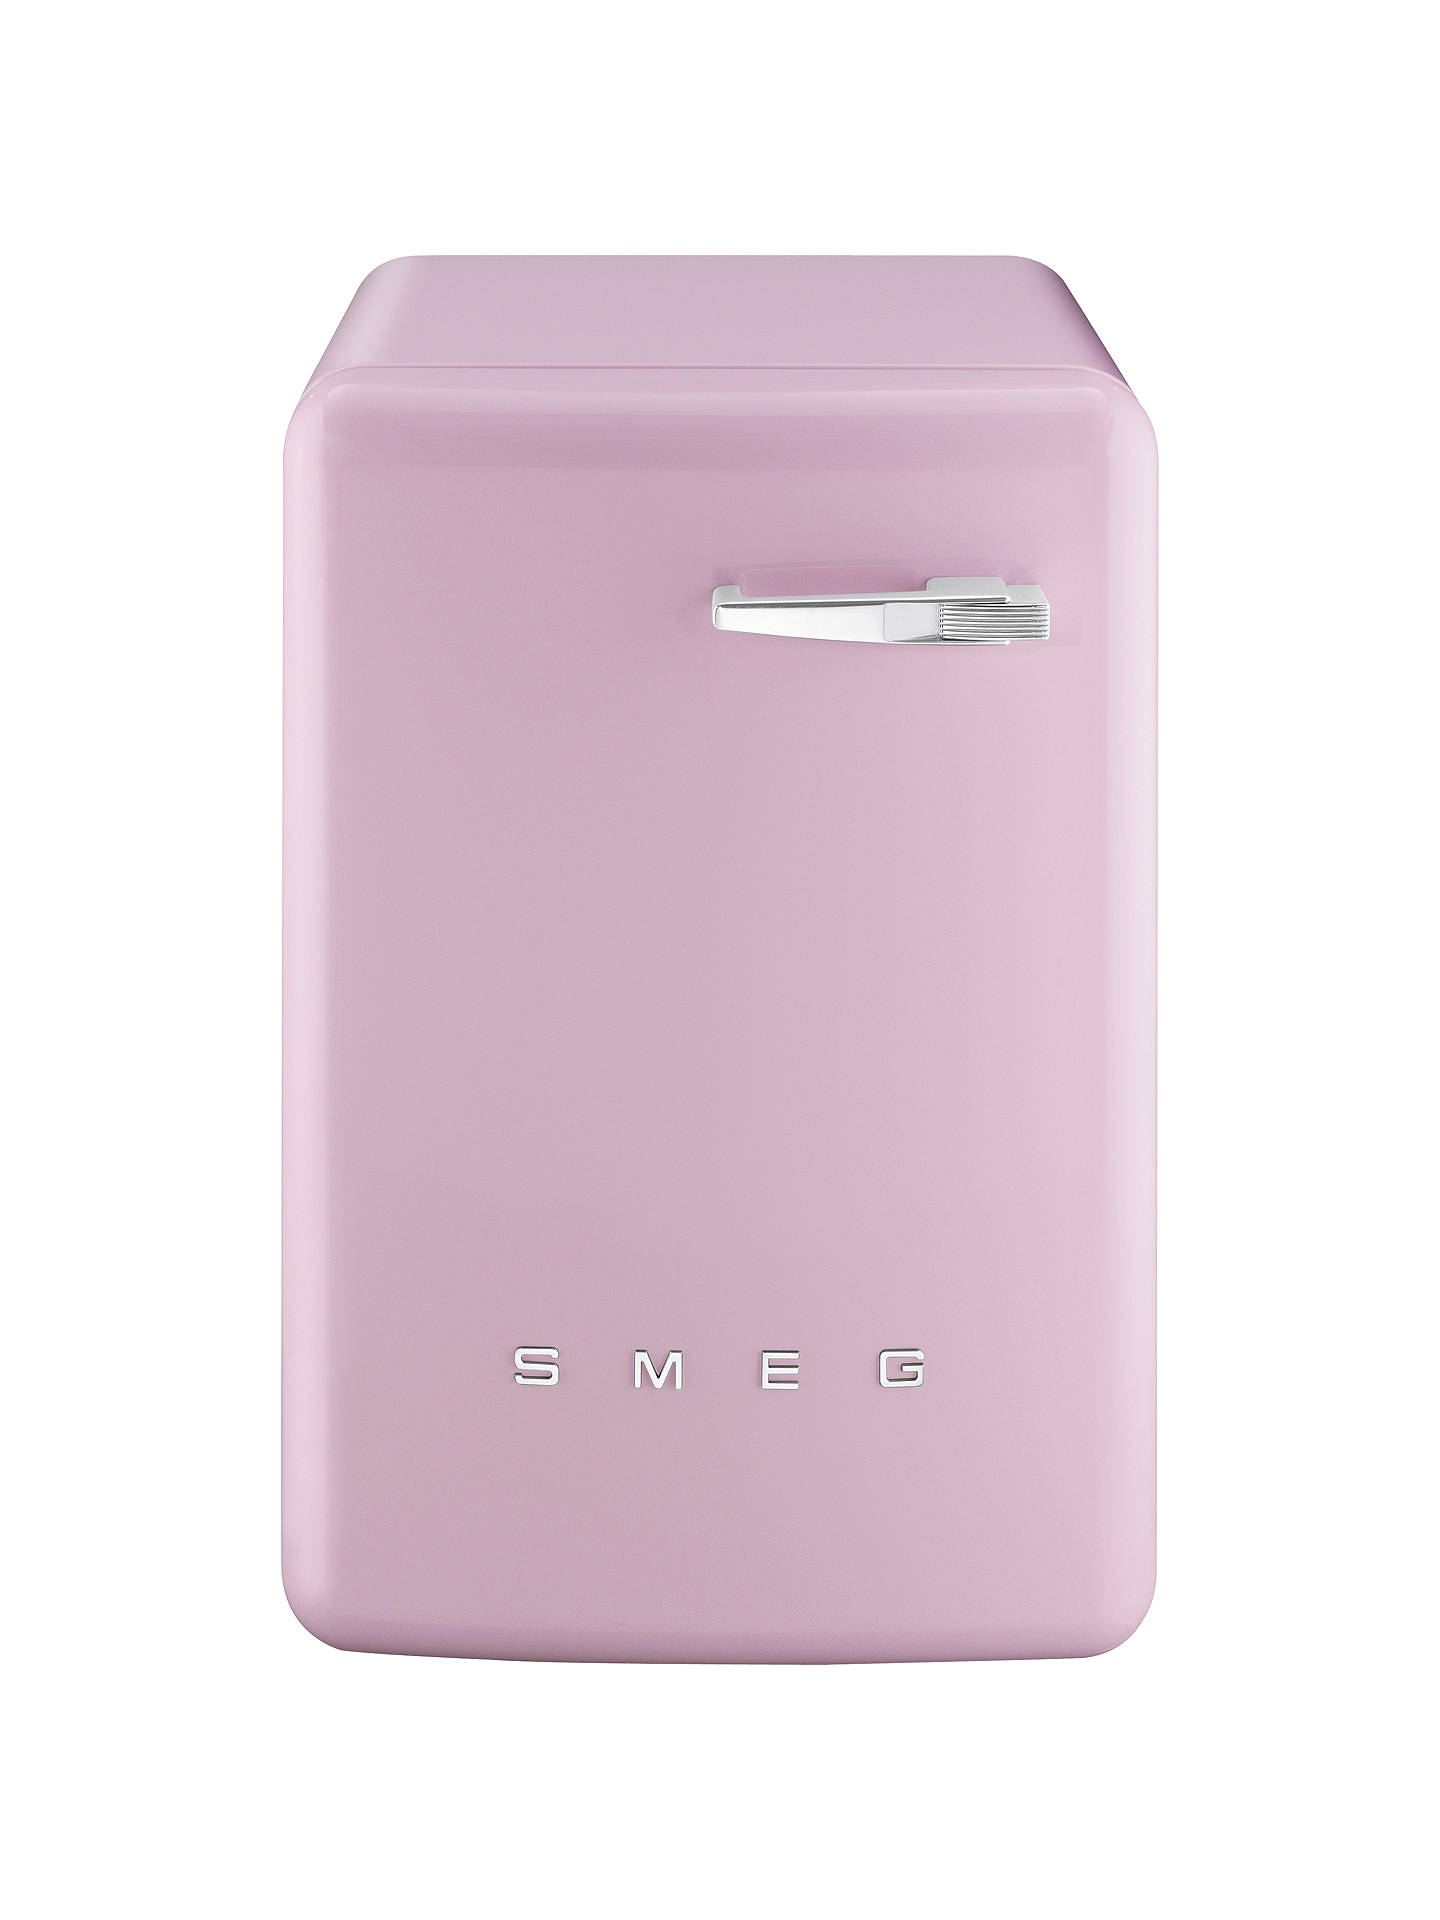 BuySmeg WMFABRO1 Slim Depth Freestanding Washing Machine, 7kg Load, A Energy Rating, 1400rpm Spin, Pink Online at johnlewis.com